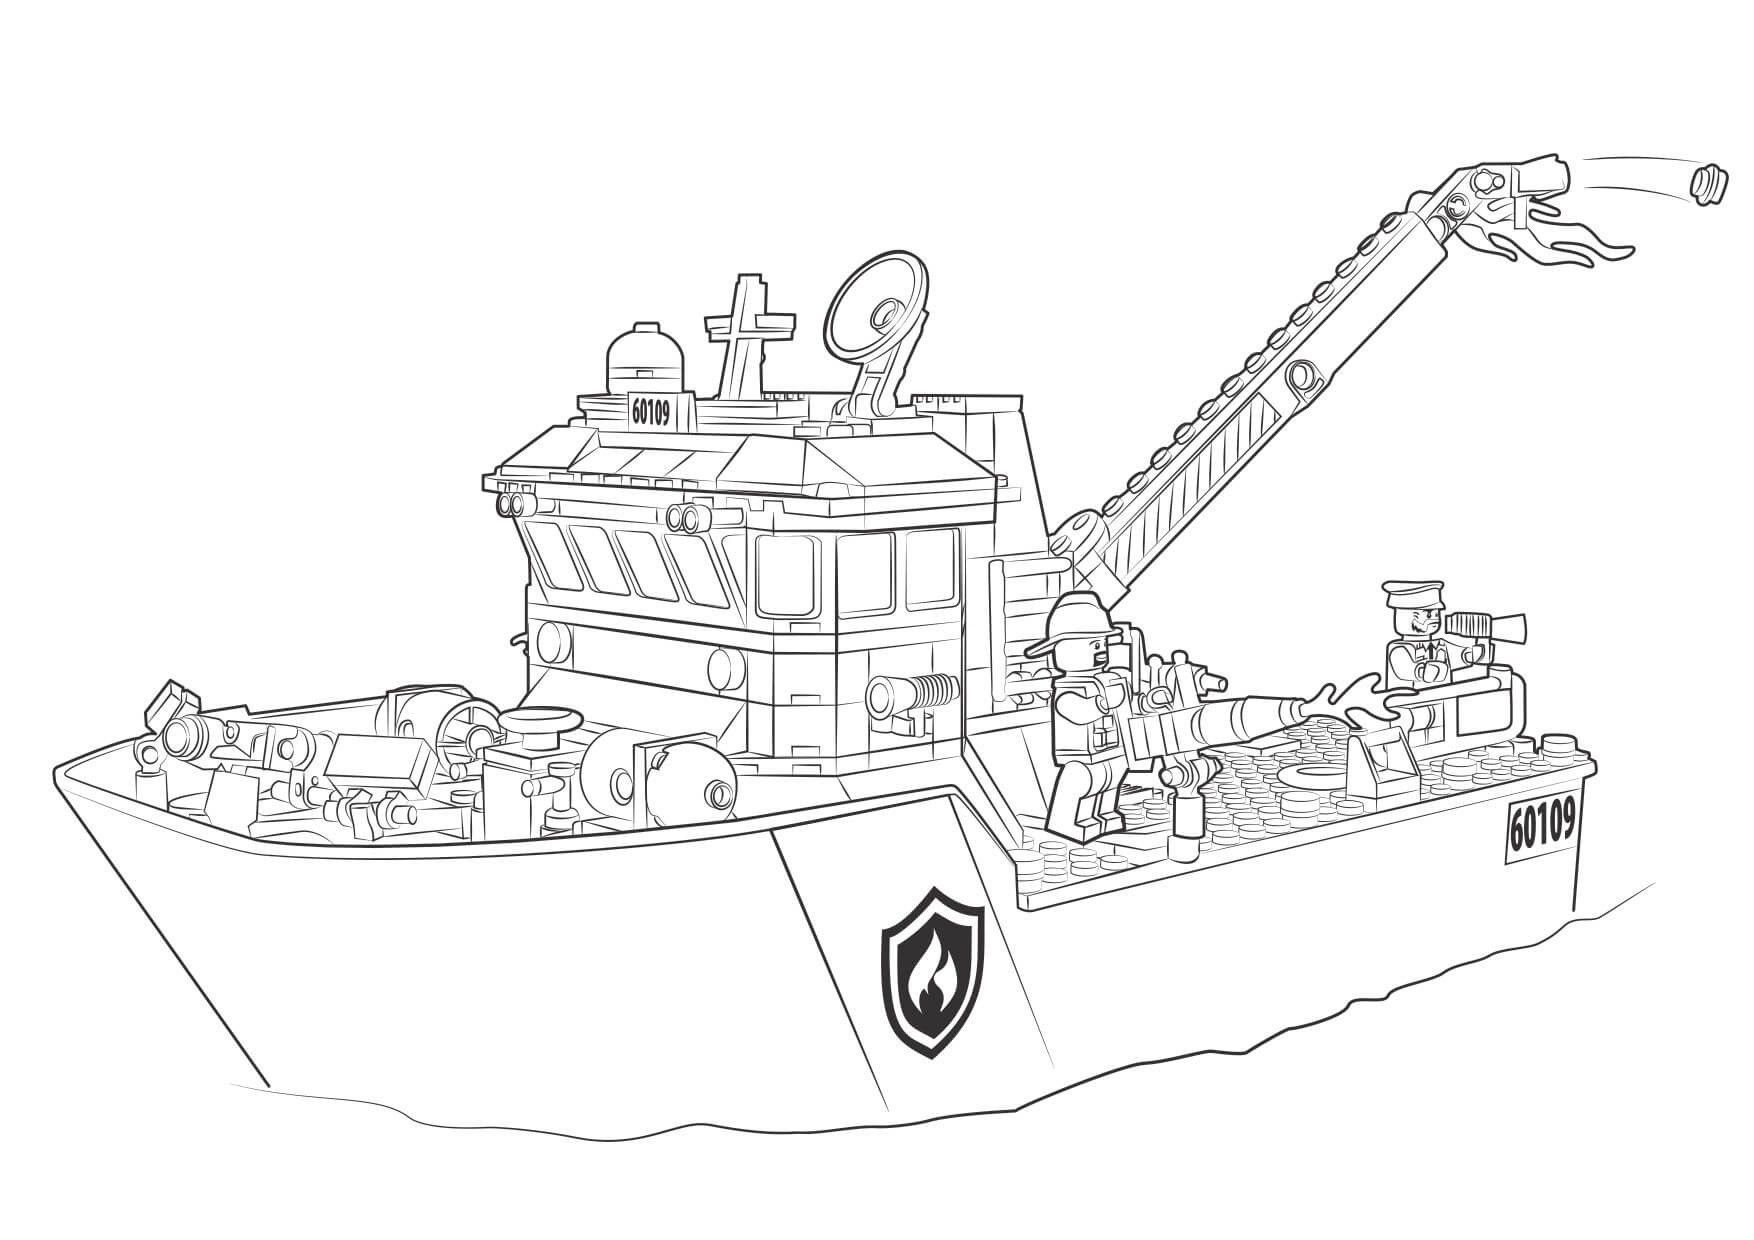 lego boat coloring page lego police boat coloring pages ferrisquinlanjamal coloring lego boat page